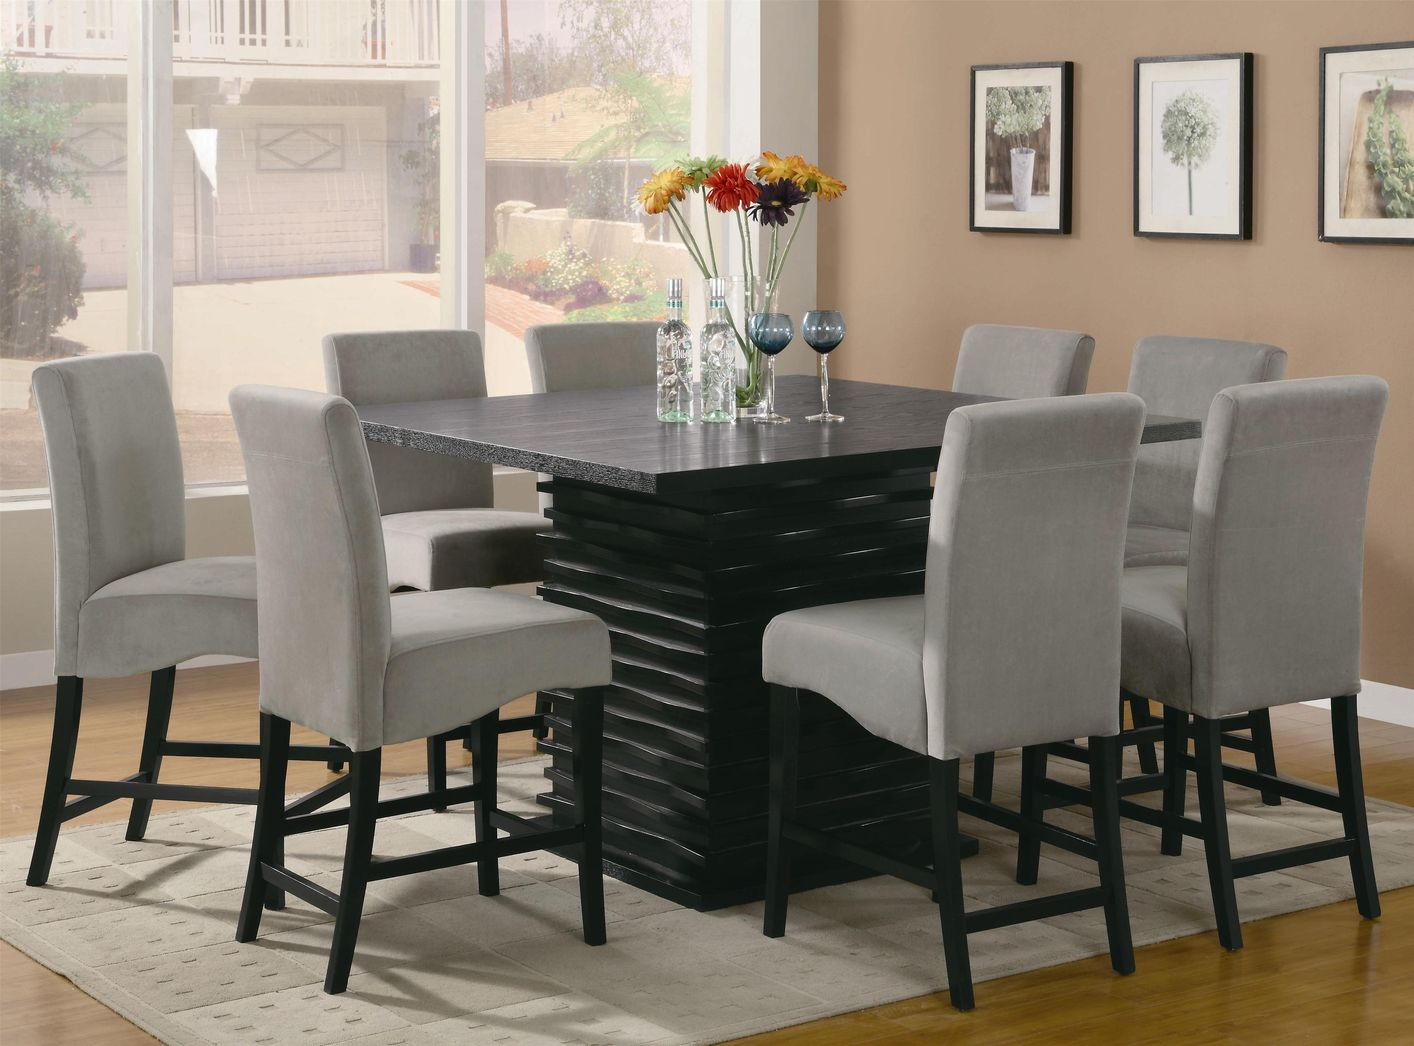 Stanton Black And Gray Wood Pub Table Set & Stanton Black And Gray Wood Pub Table Set - Steal-A-Sofa Furniture ...